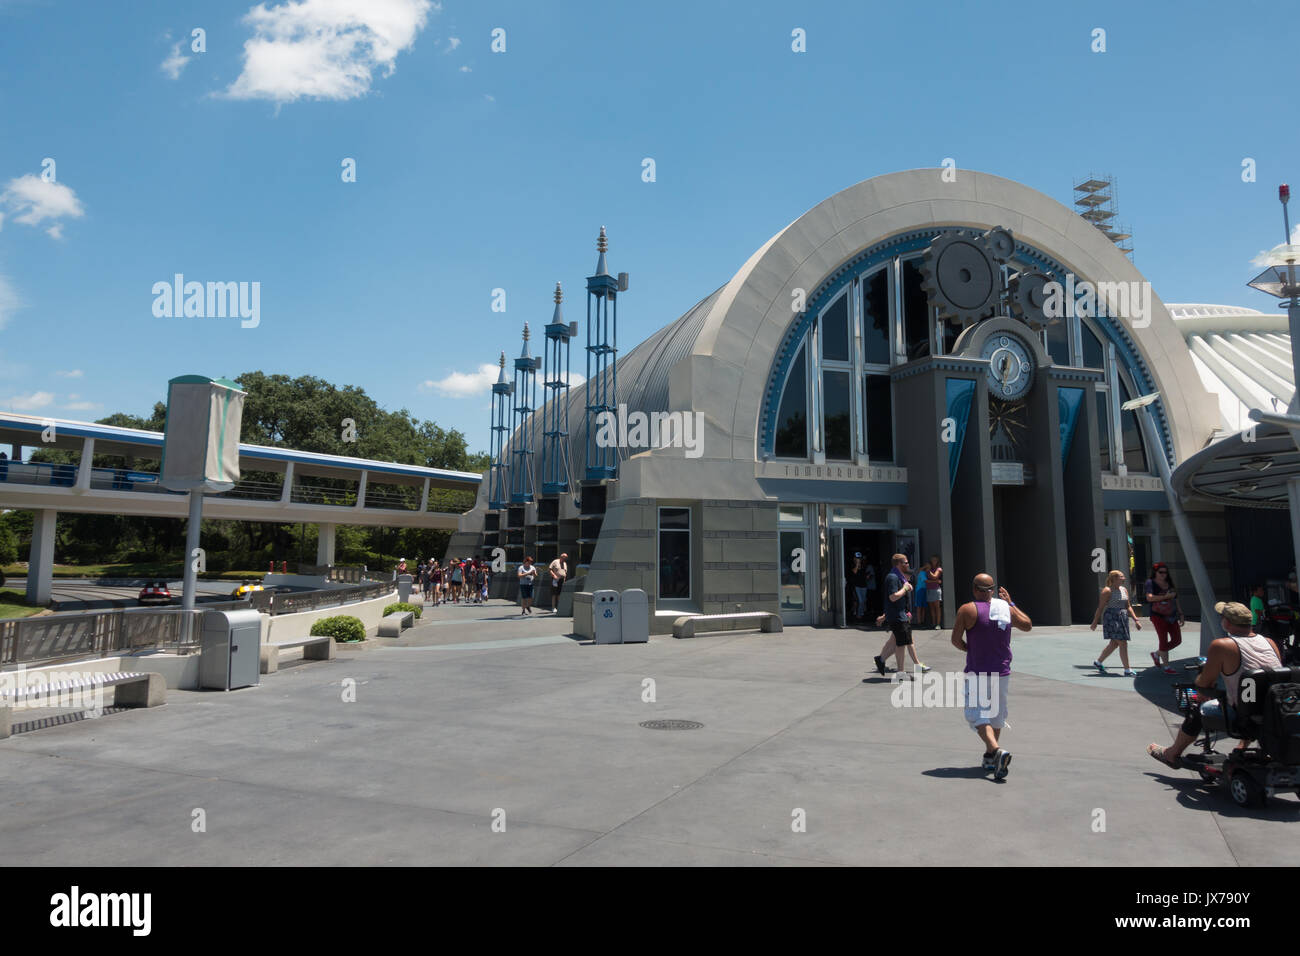 Space Mountain attraction at Magic Kindgom Theme Park, Walt Disney World, Orlando, Florida. Stock Photo